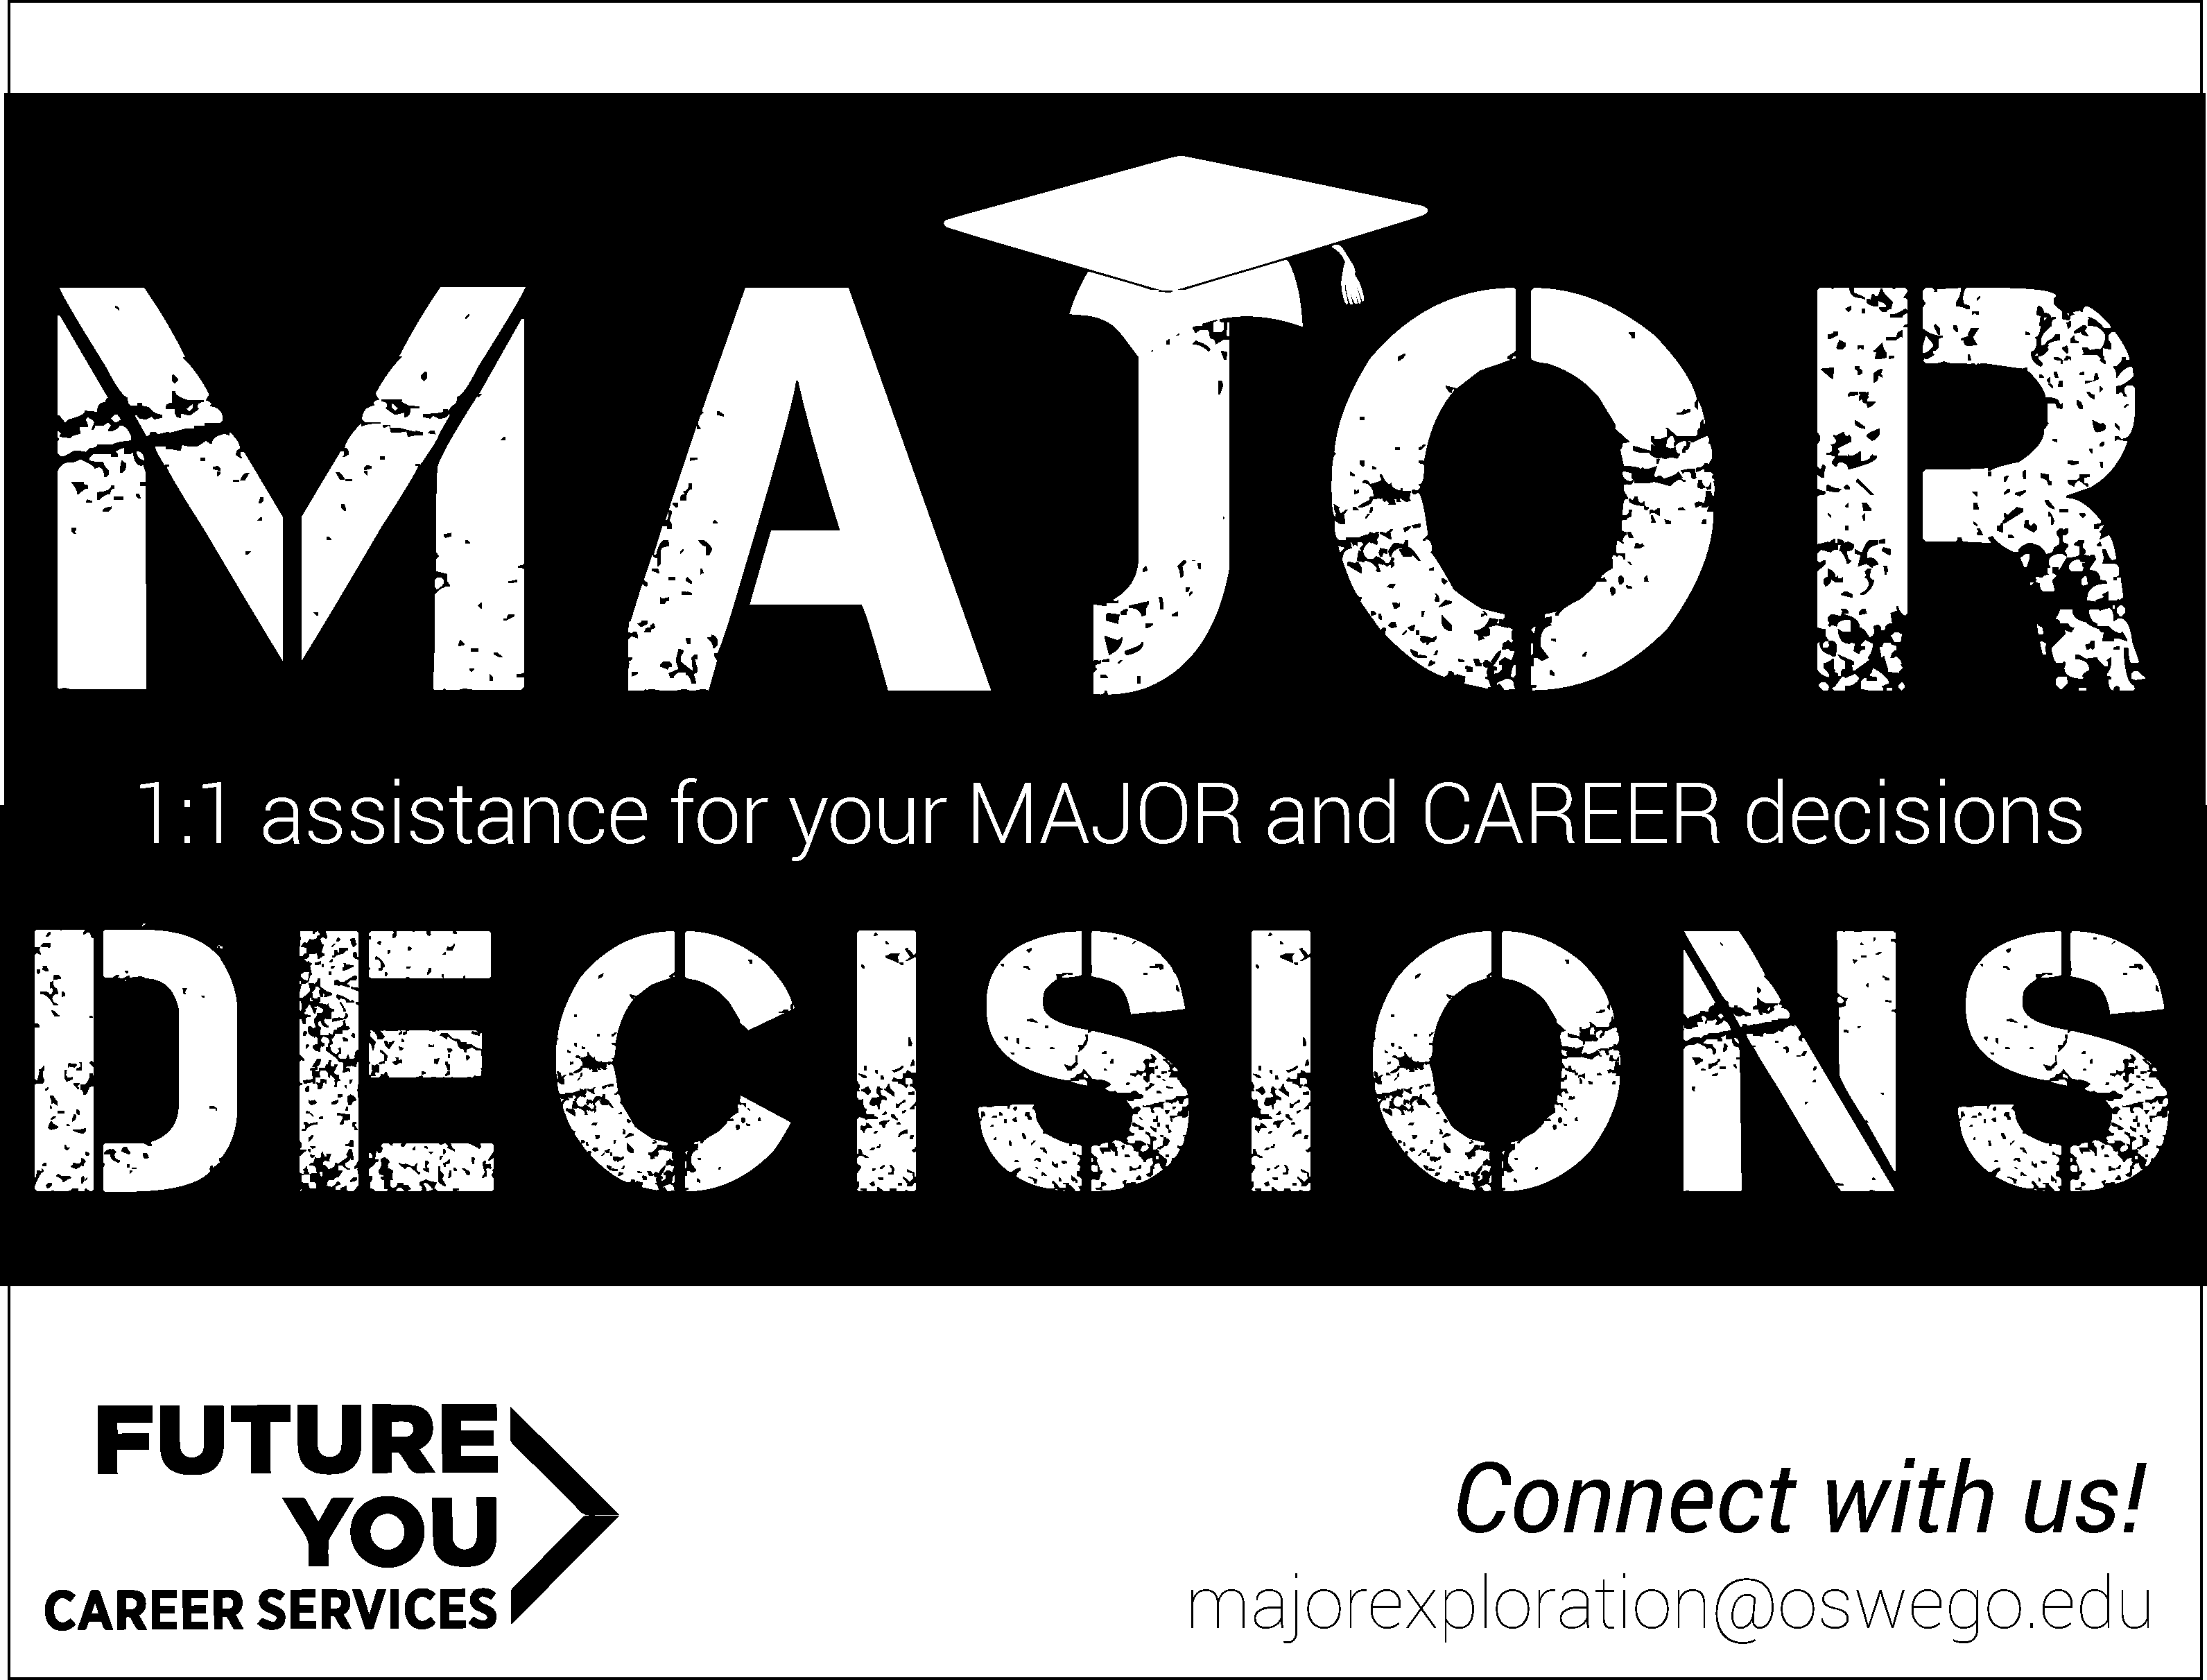 Major Decisions Career Coaching